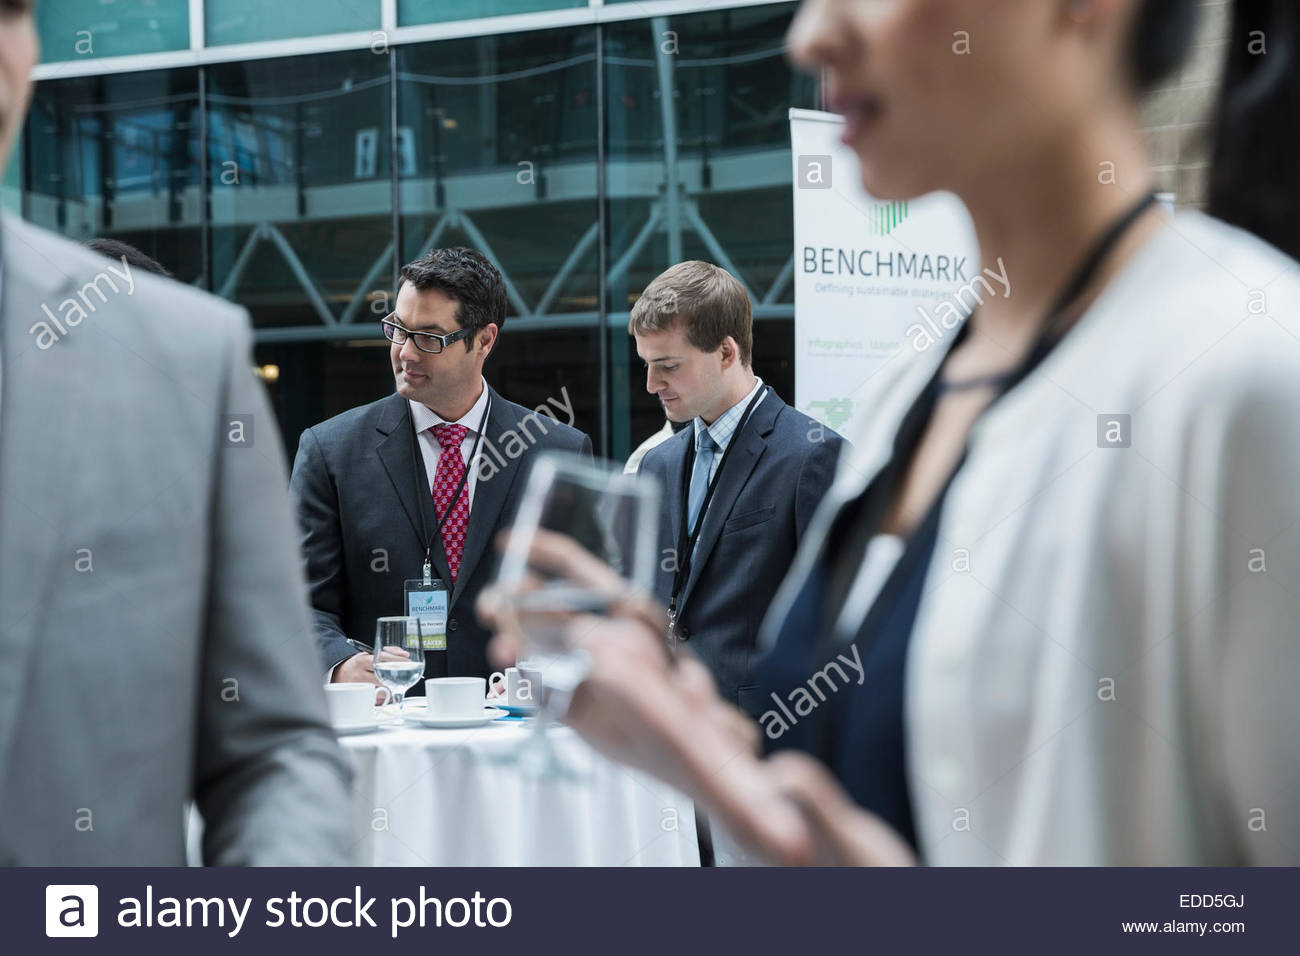 Business people networking at conference - Stock Image